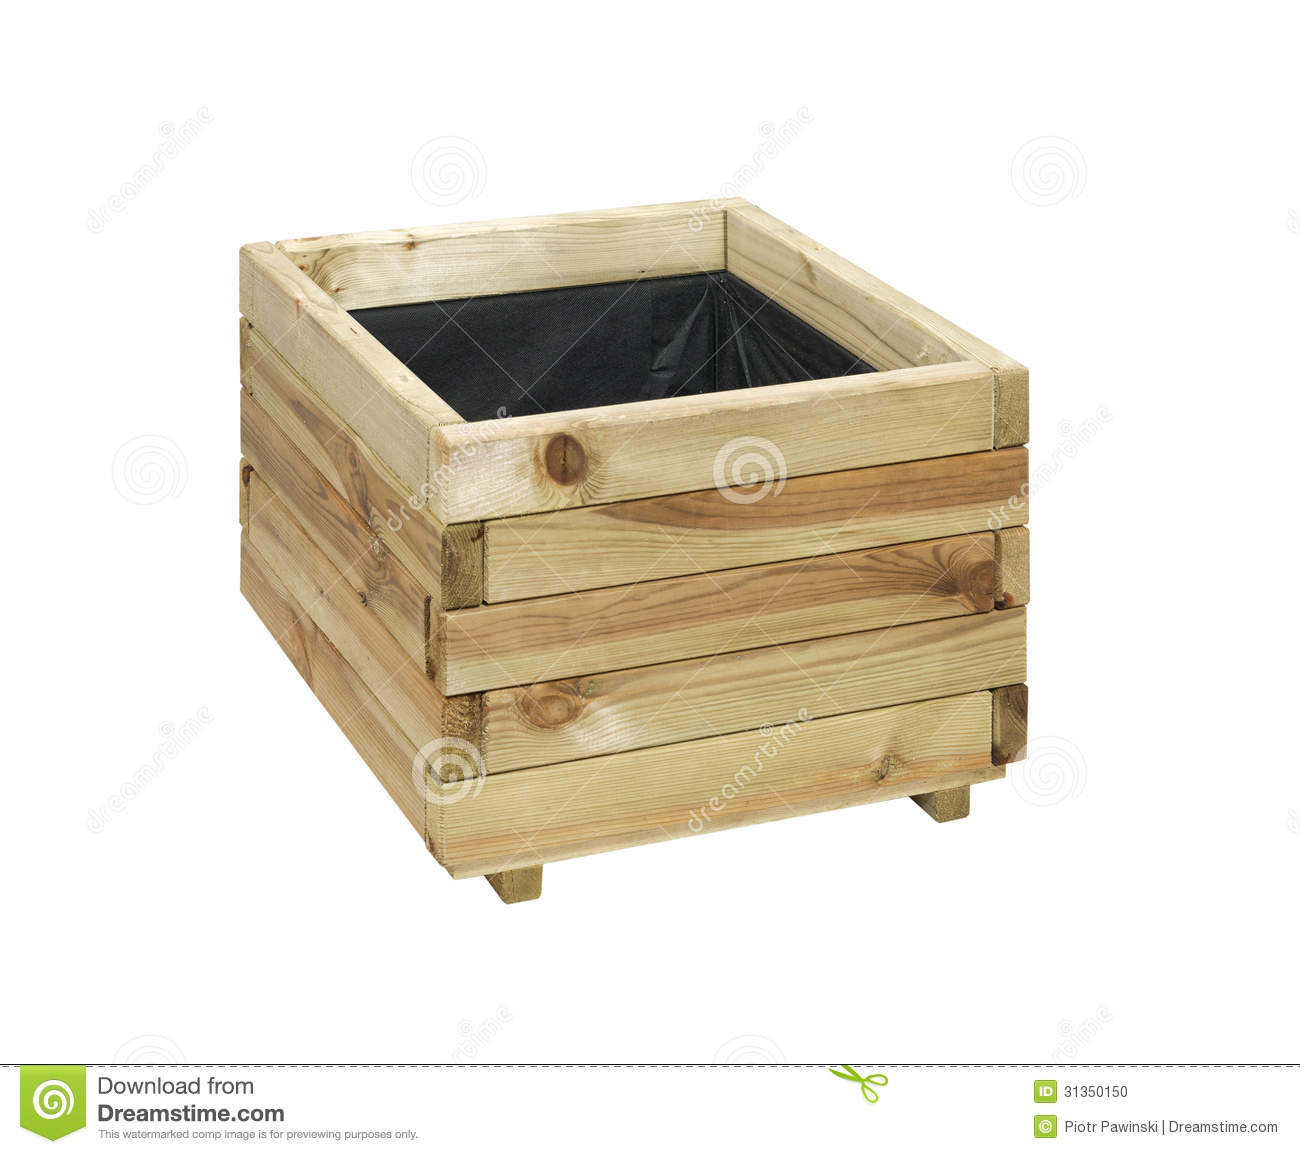 Wooden box for flowers stock photo. Image of storage ...